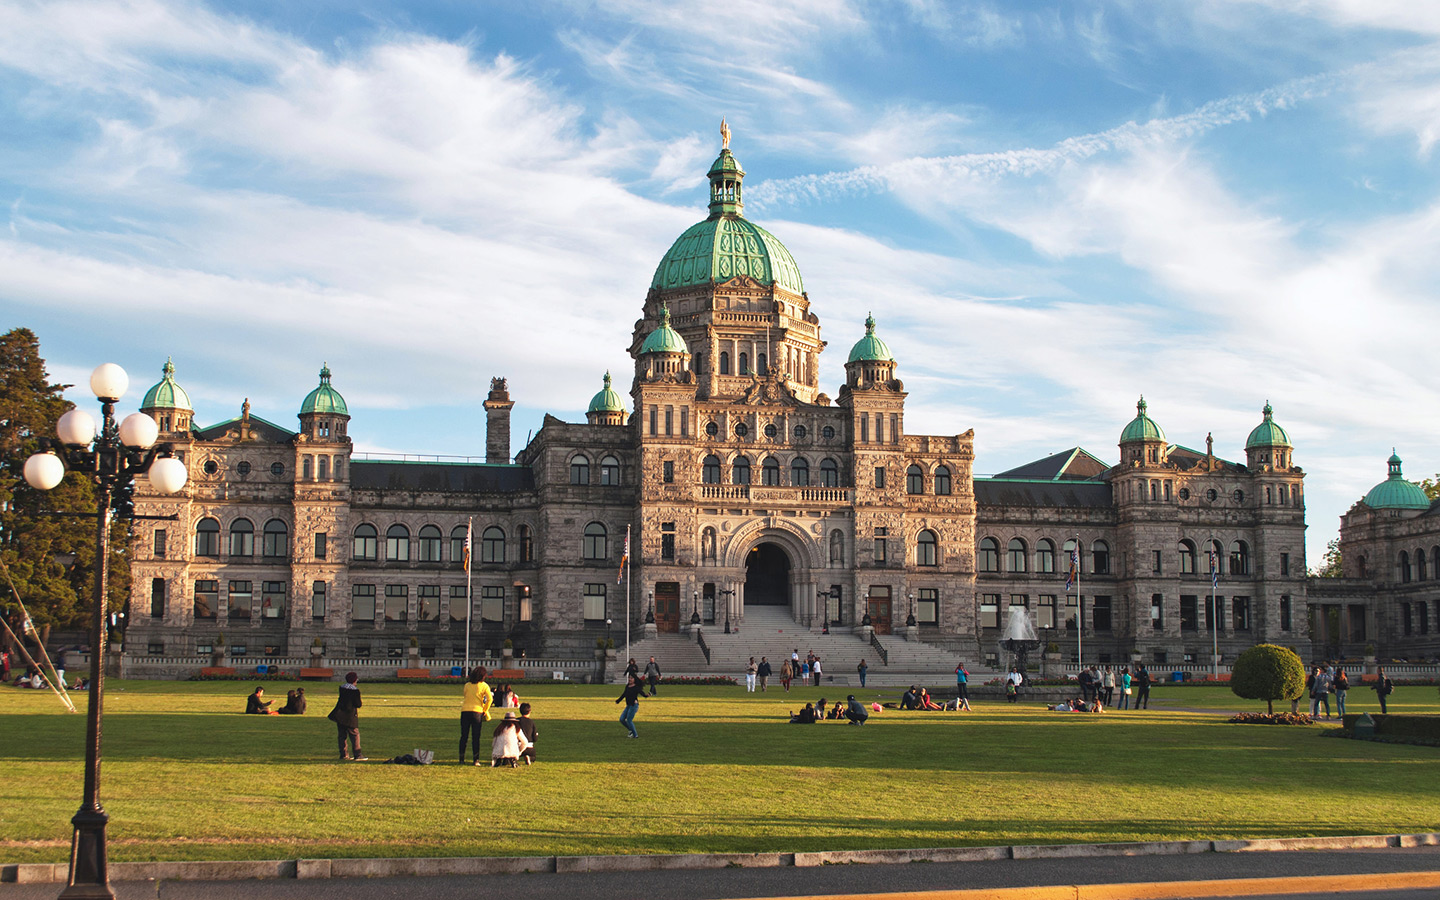 Legislative Building in Victoria, British Columbia, Canada